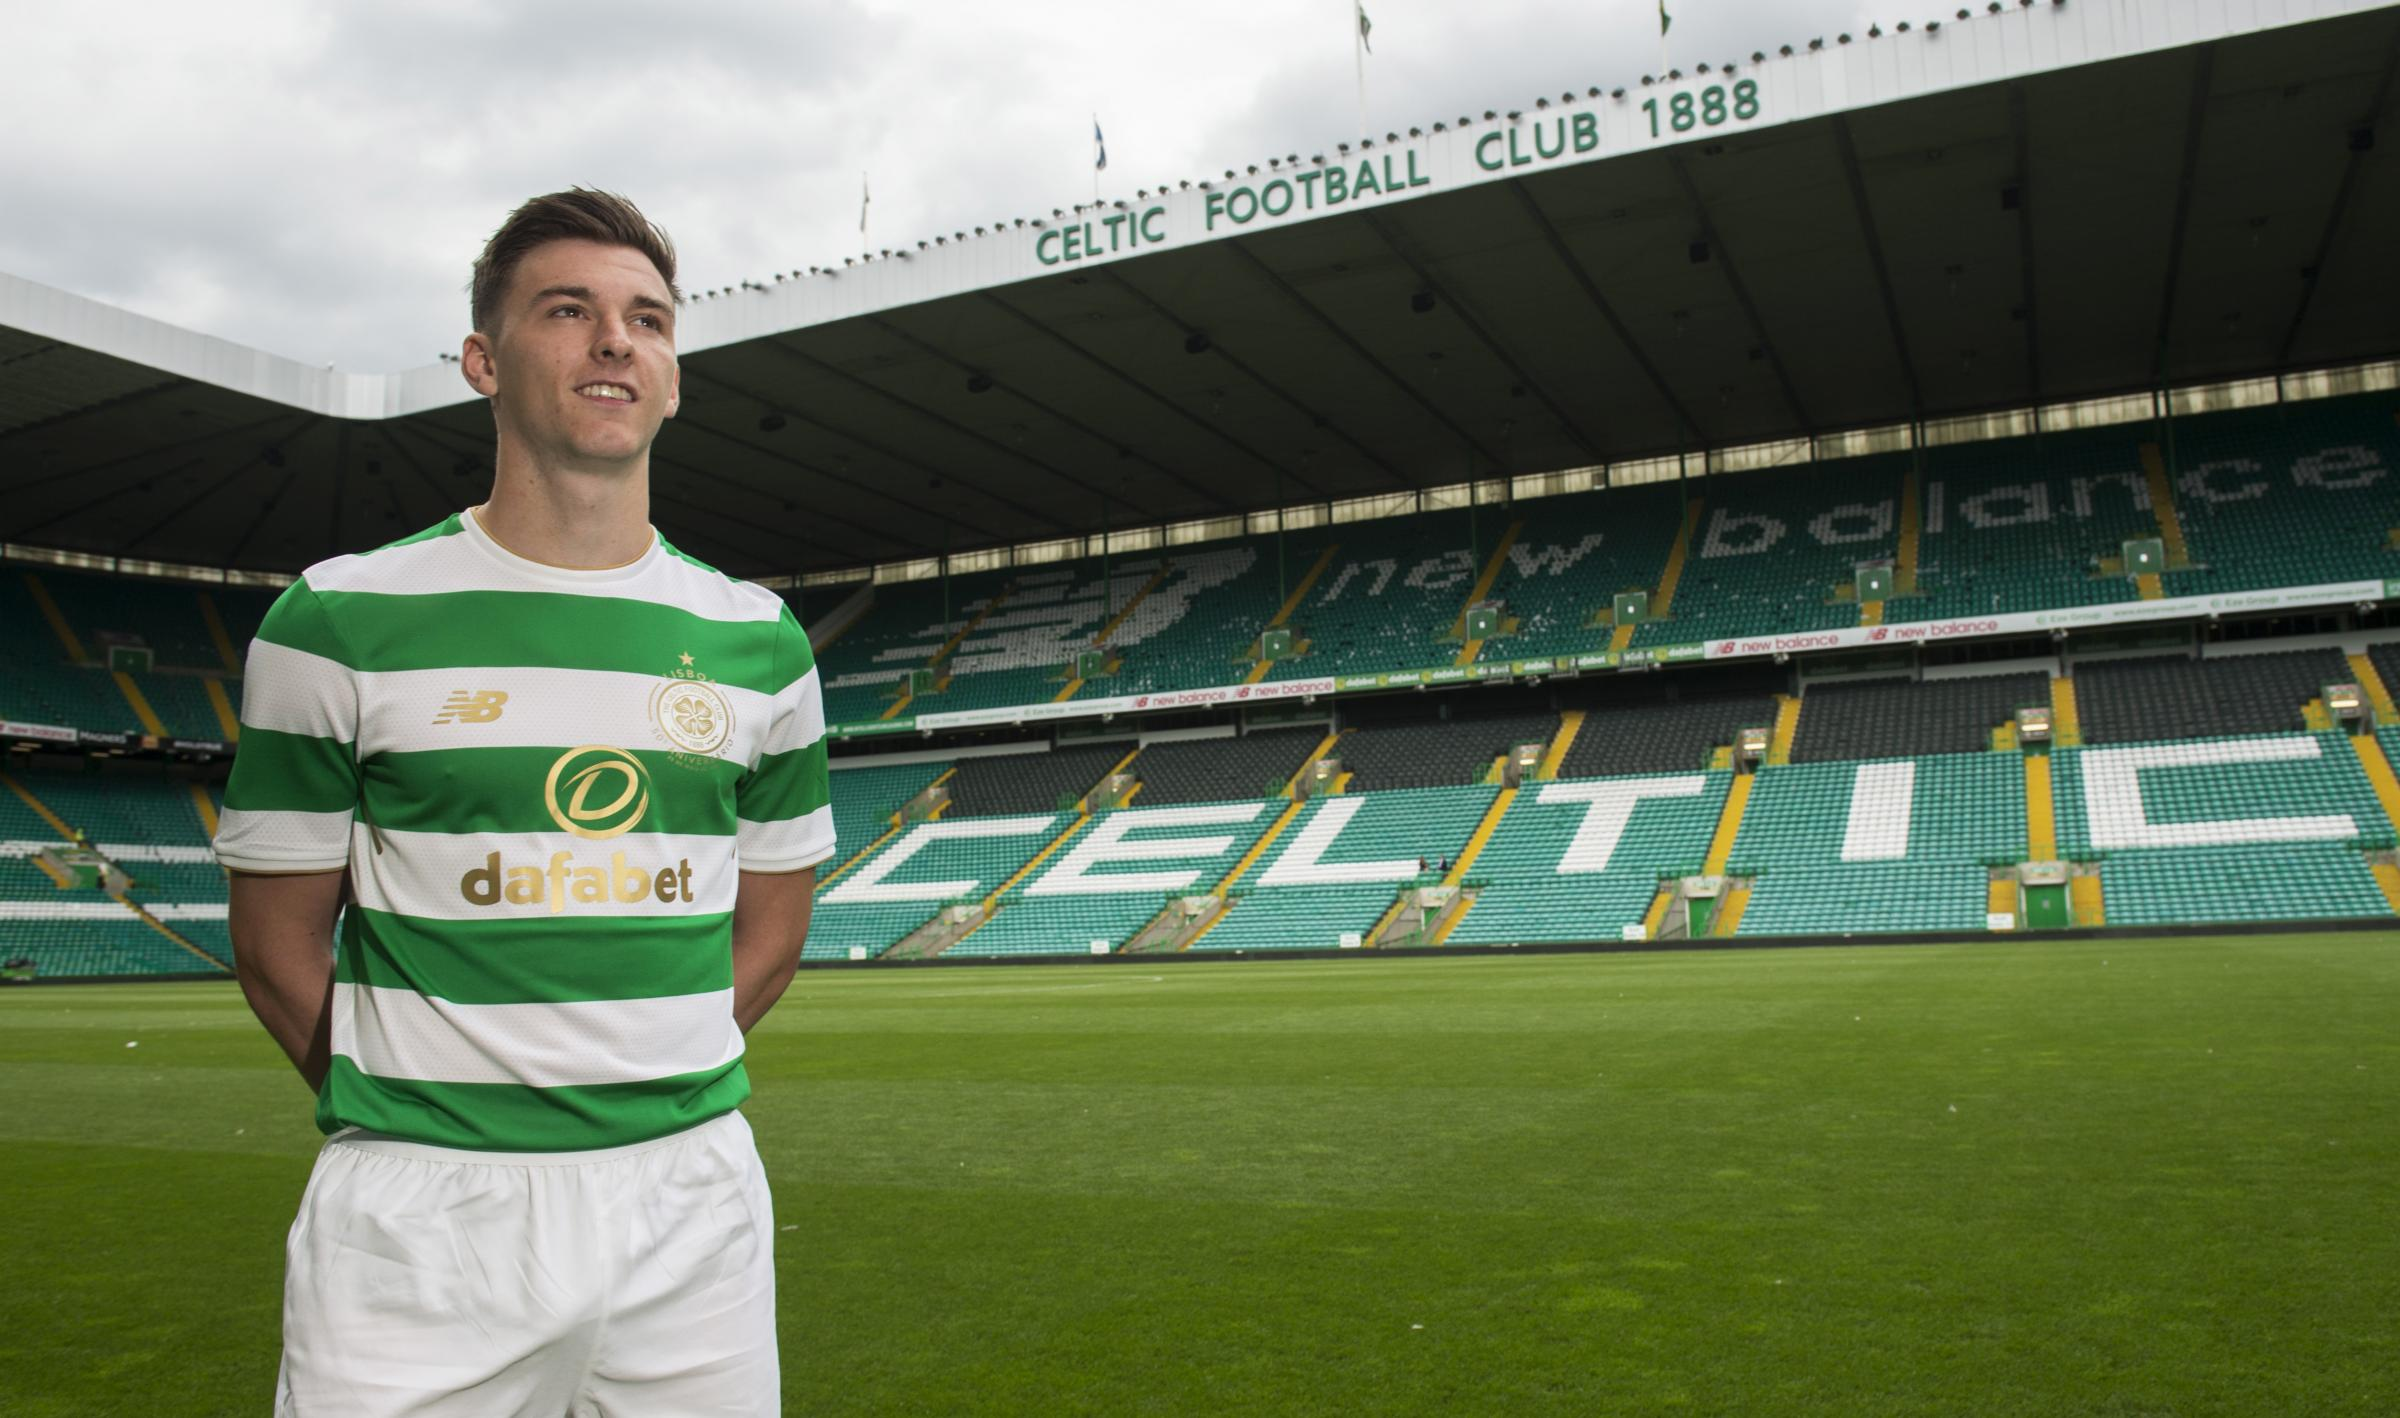 Kieran Tierney: Playing for Celtic means more to me than earning big money down south